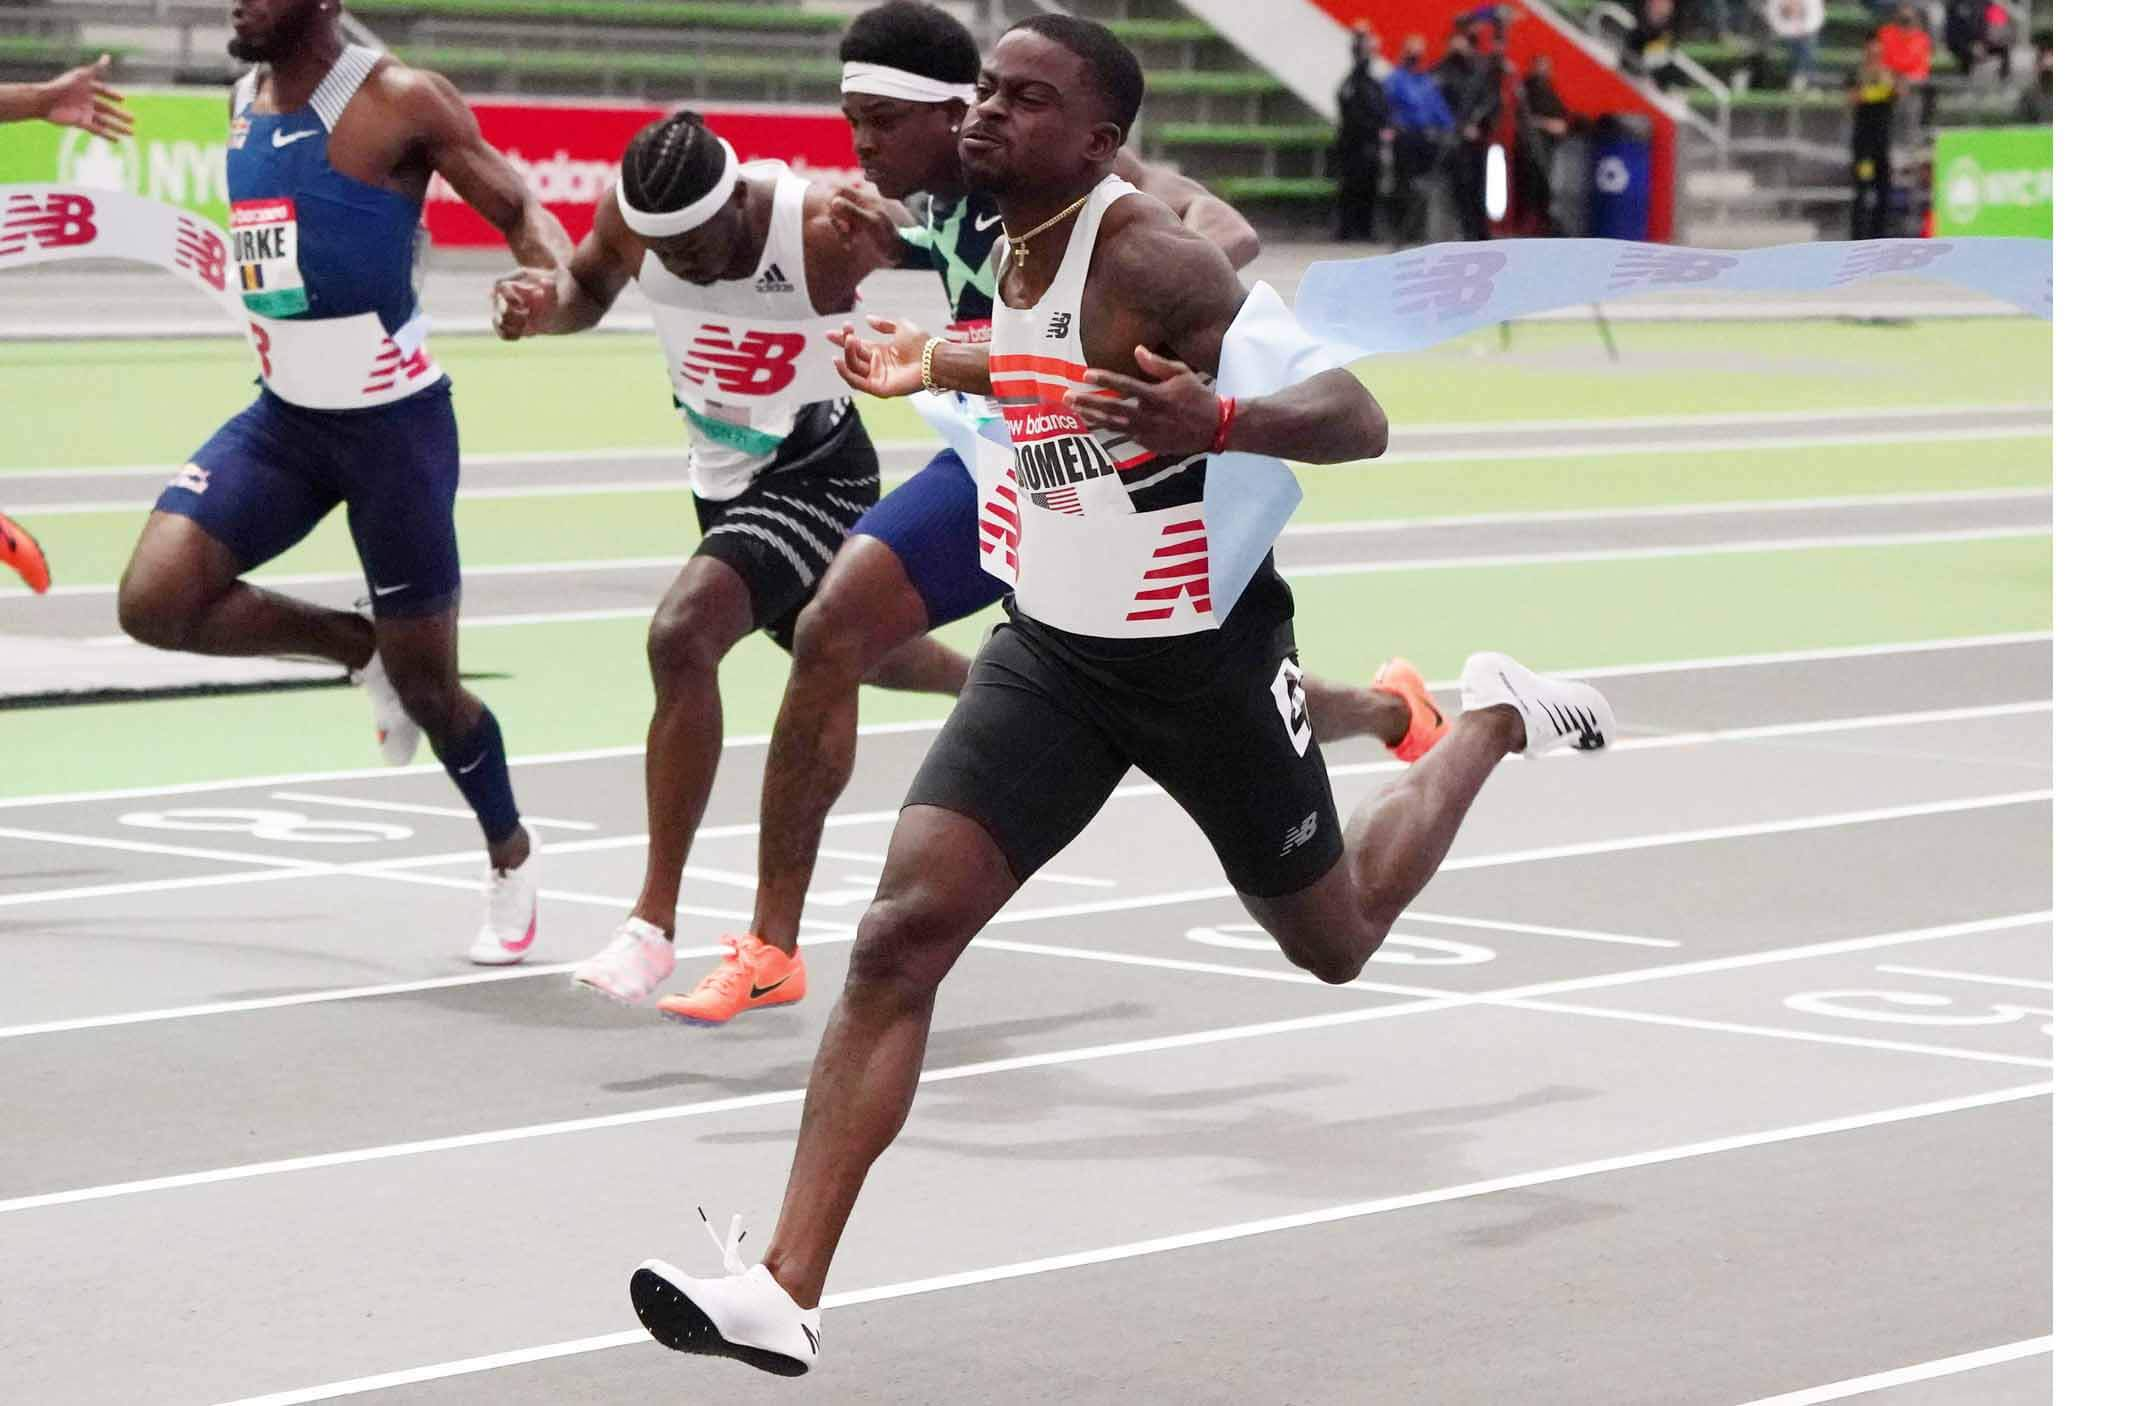 Trayvon Bromell (USA) wins the 60m in 6.50 during the New Balance Indoor Grand Prix at Ocean Breeze Athletic Complex. From left are Mario Burke (BAR) and Brandon Carnes (USA) and Marvin Bracy (USA) and Bromell. - USA TODAY Sports